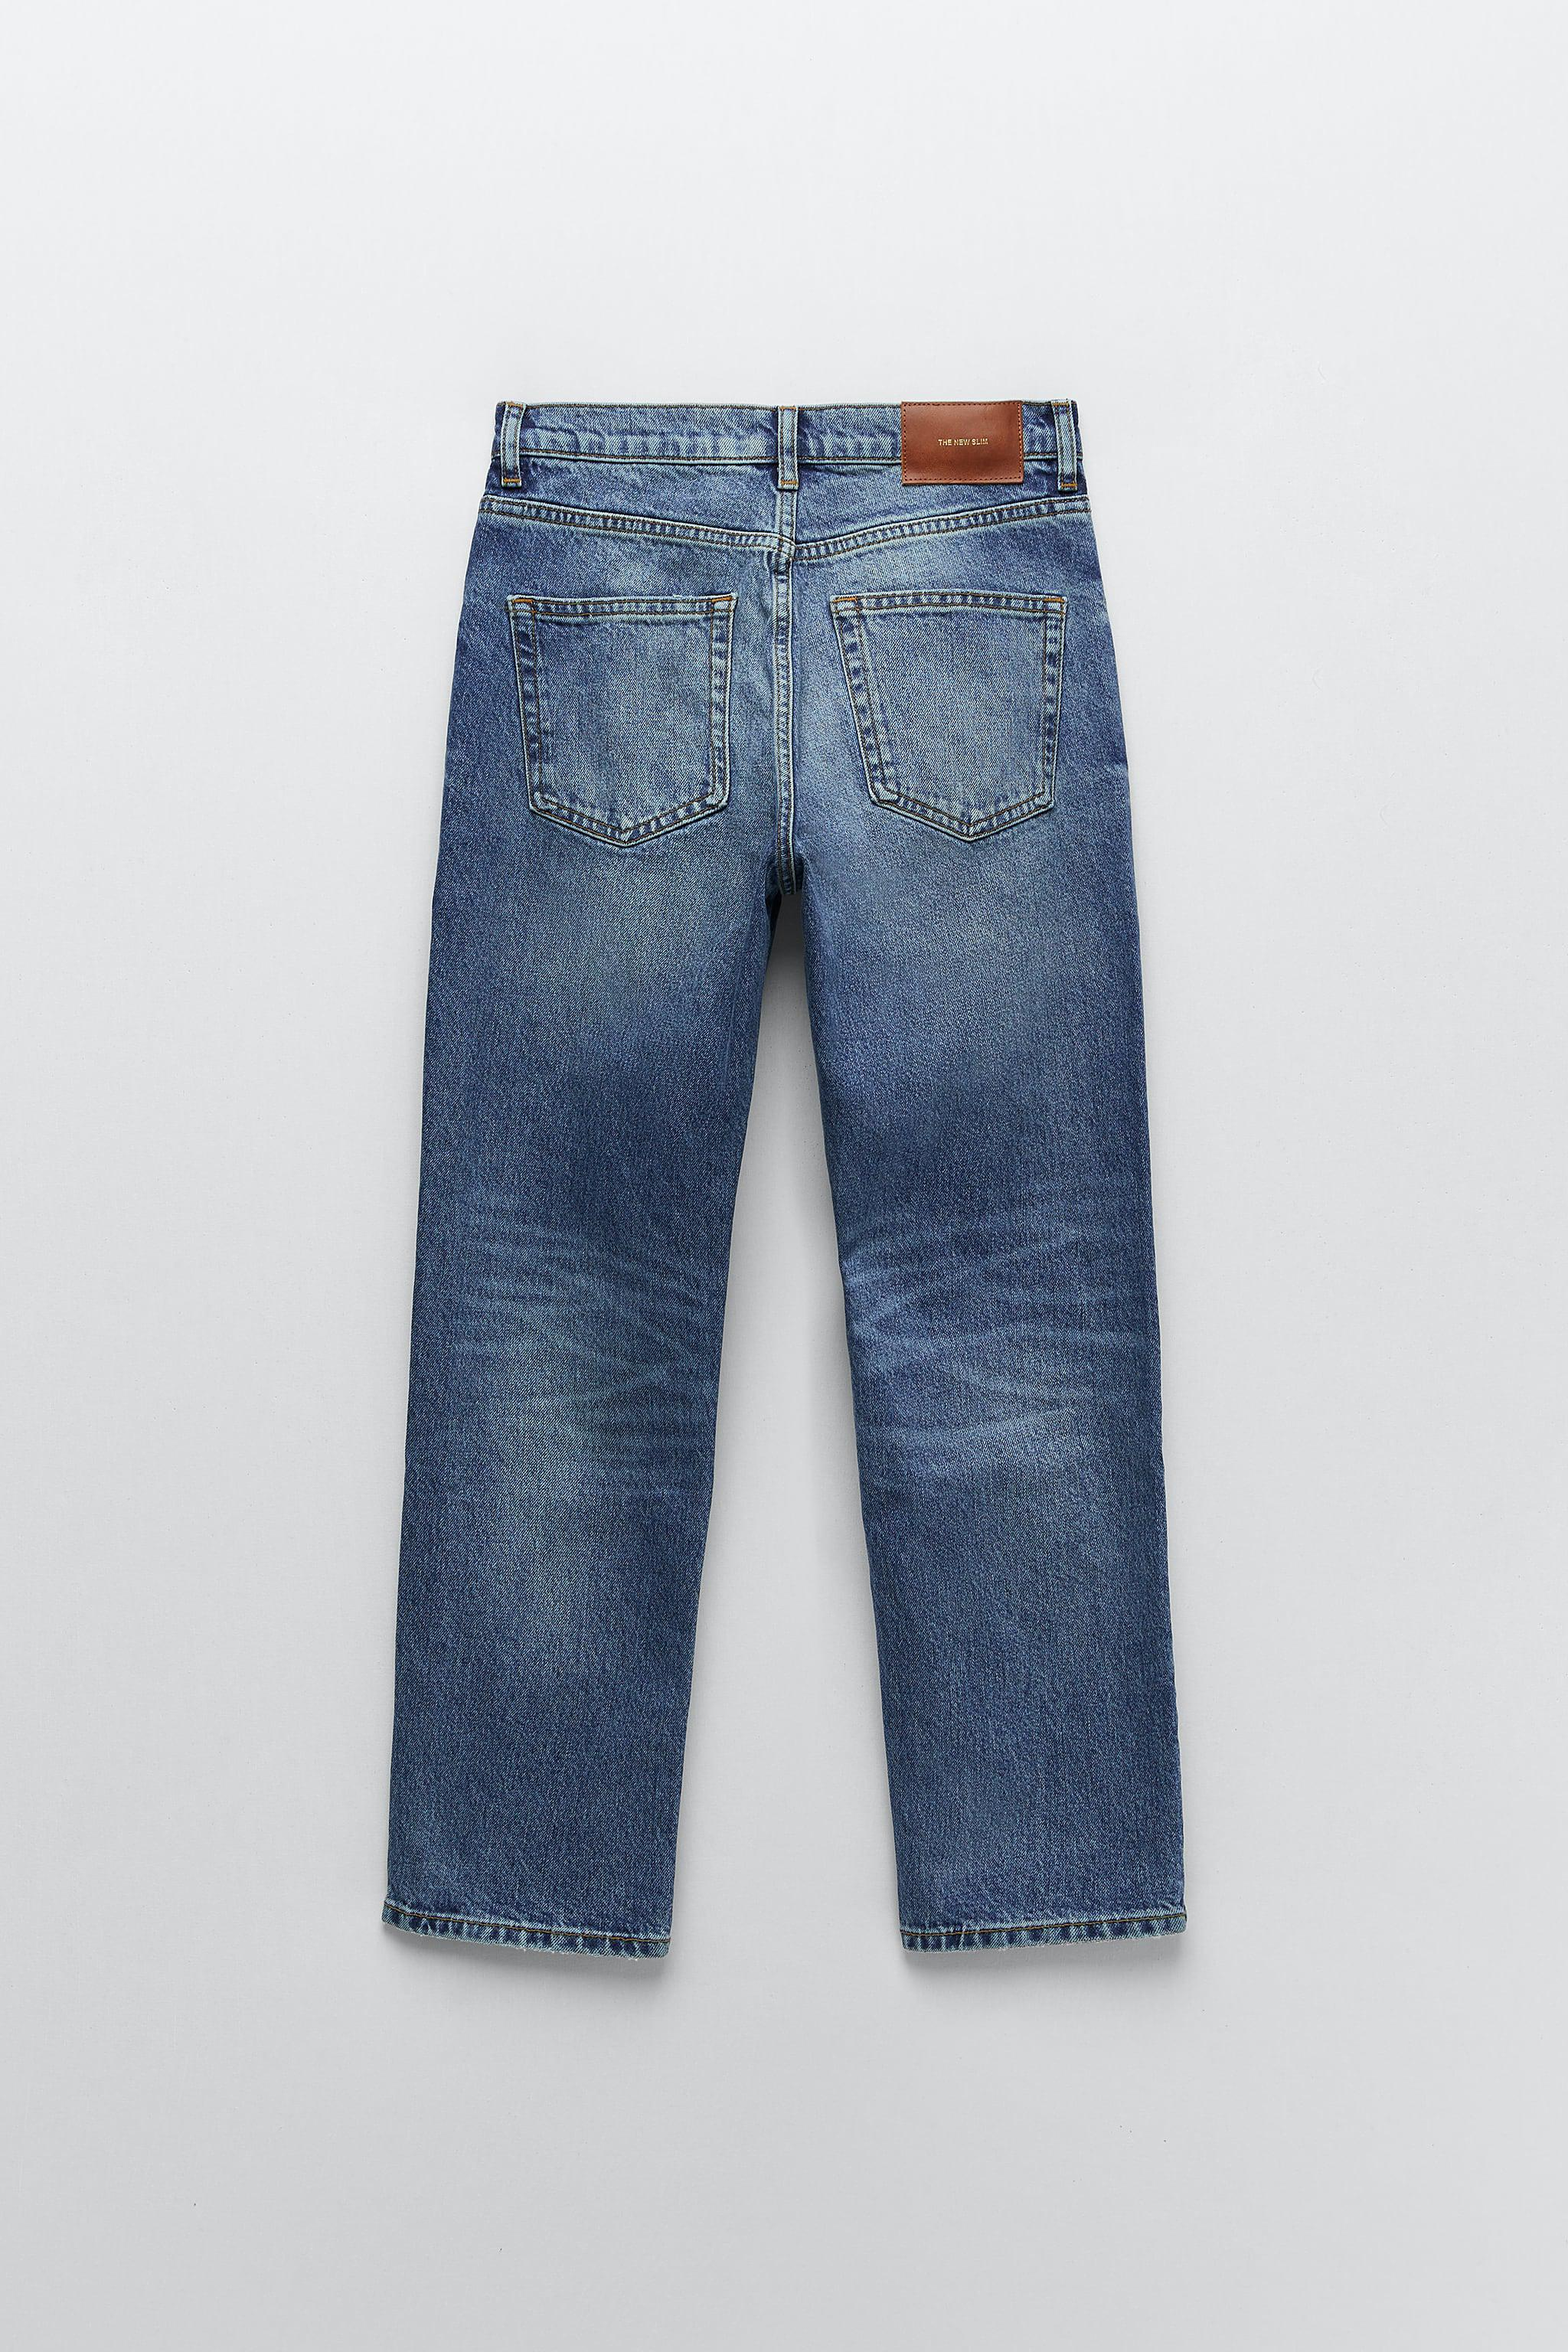 ZW THE NEW SLIM CROPPED JEANS 4